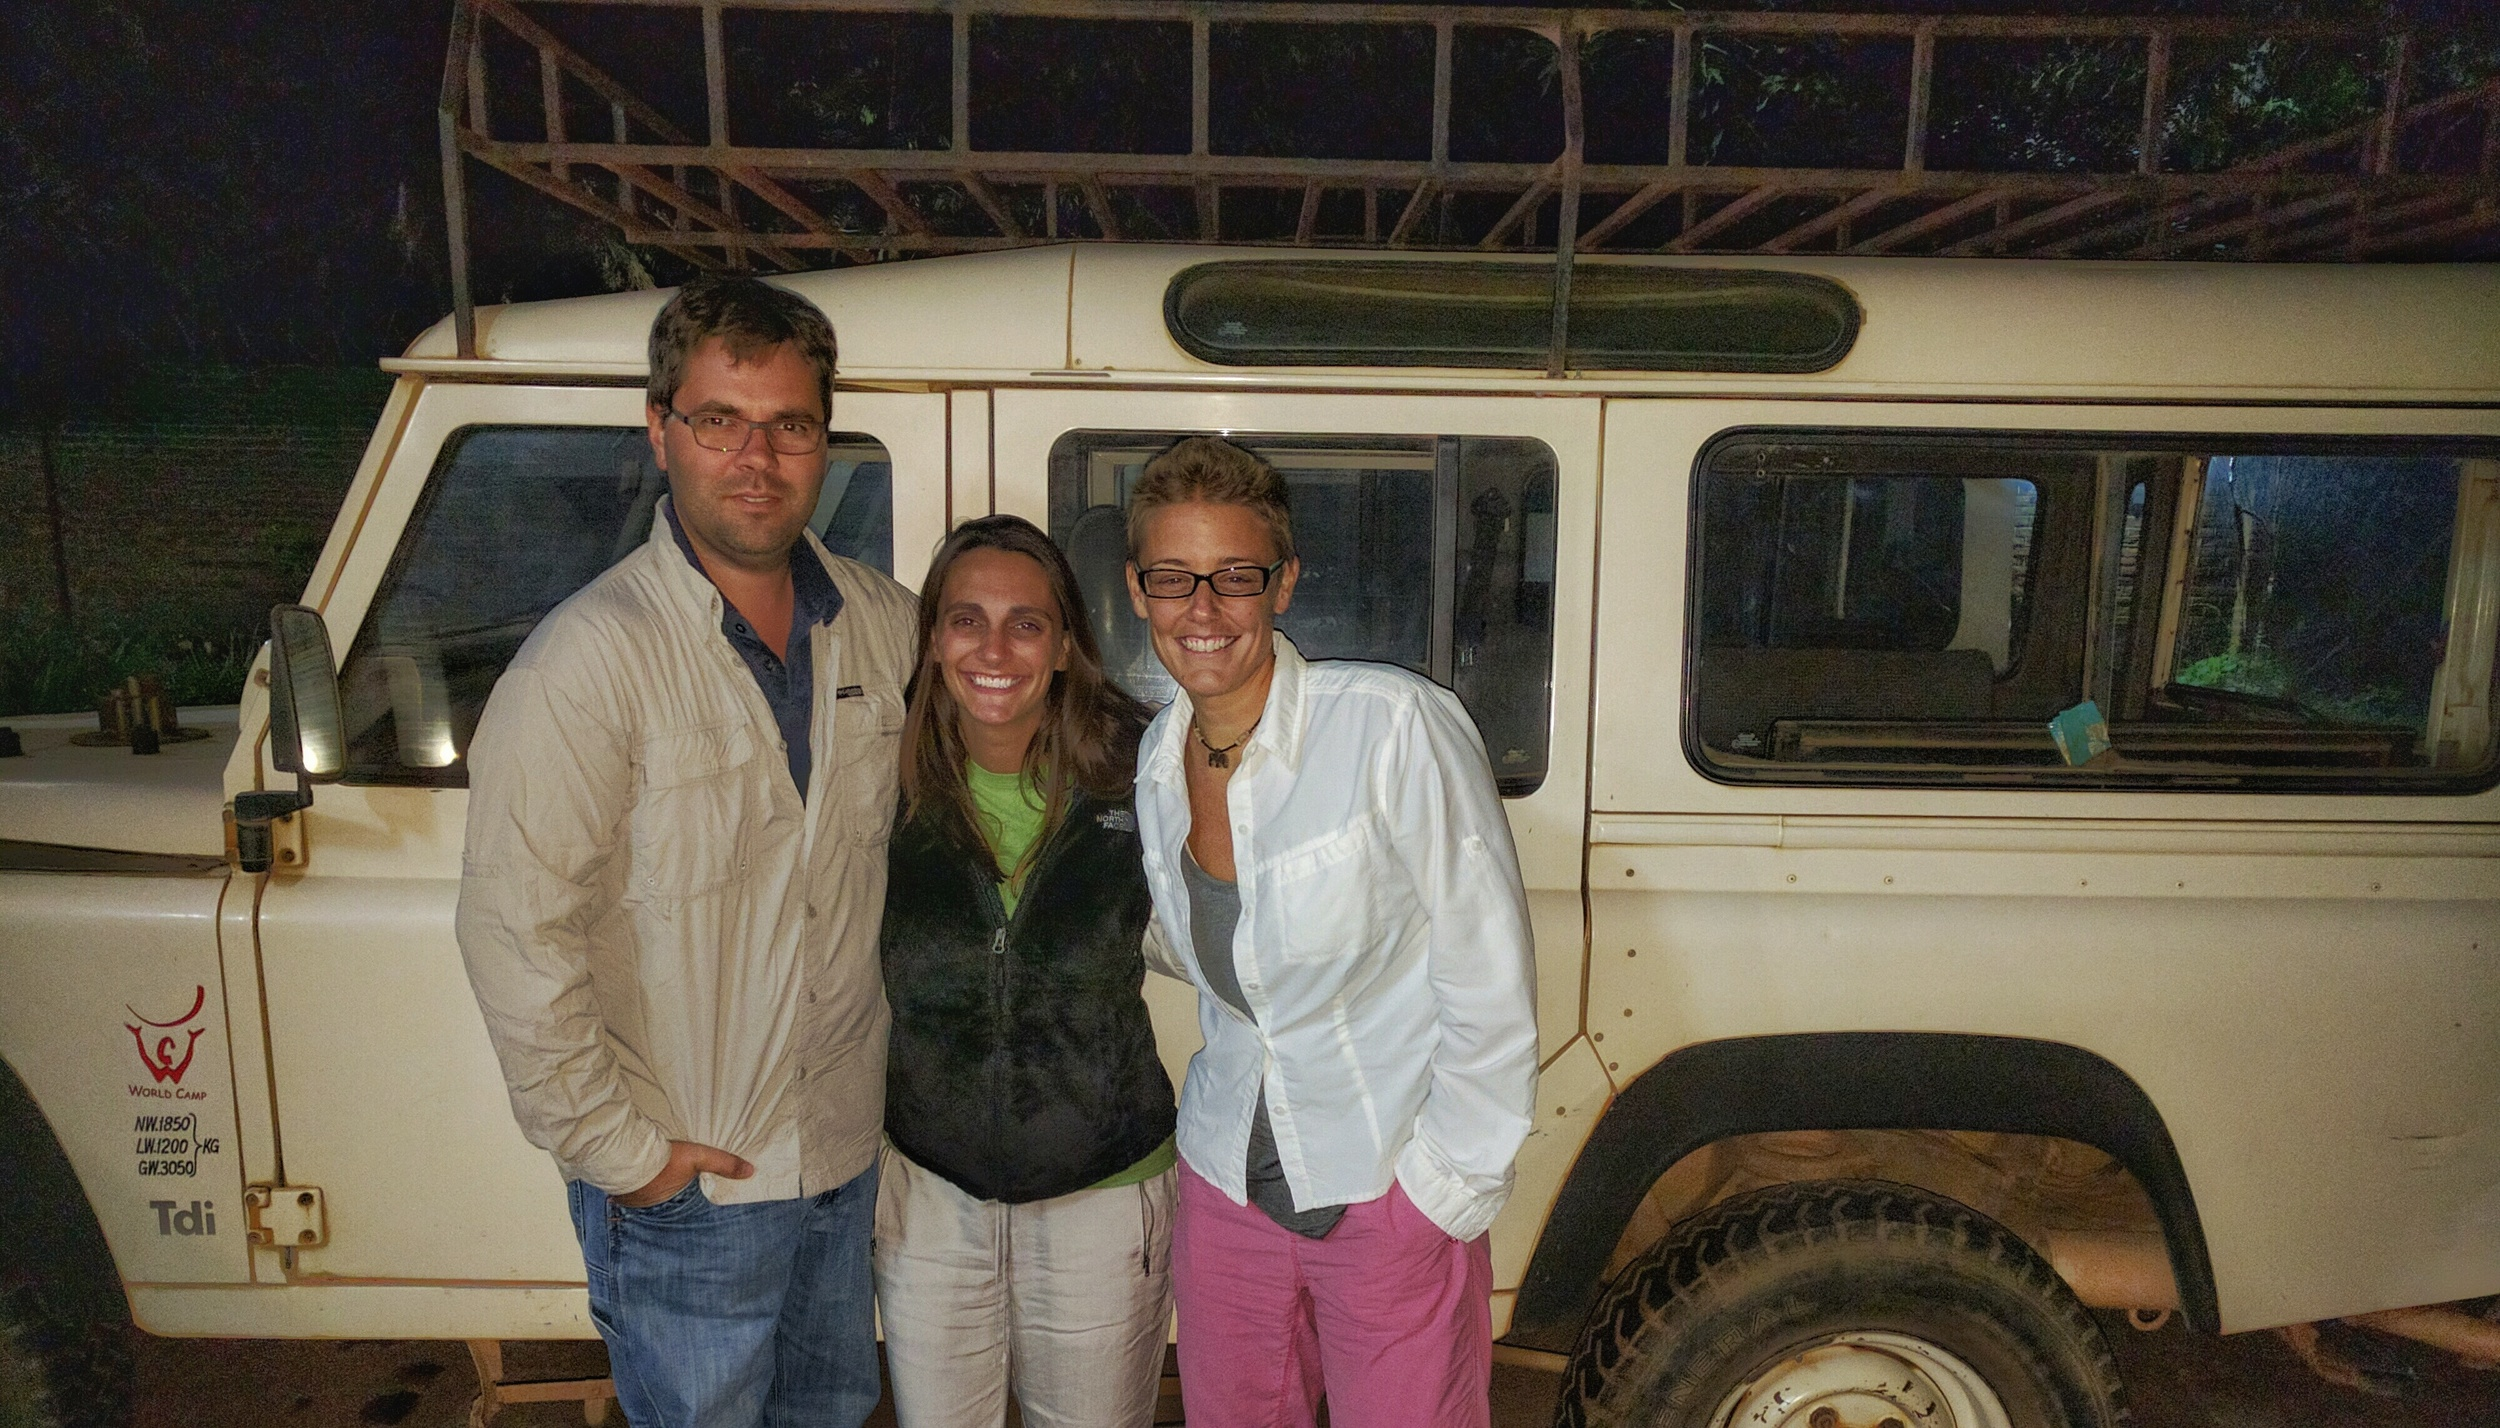 Dr. Amber Newell, Dr. Baker Henson, and Dr. Jenn Mullarkey arrive at the Access Health Africa Hub in Malawi.